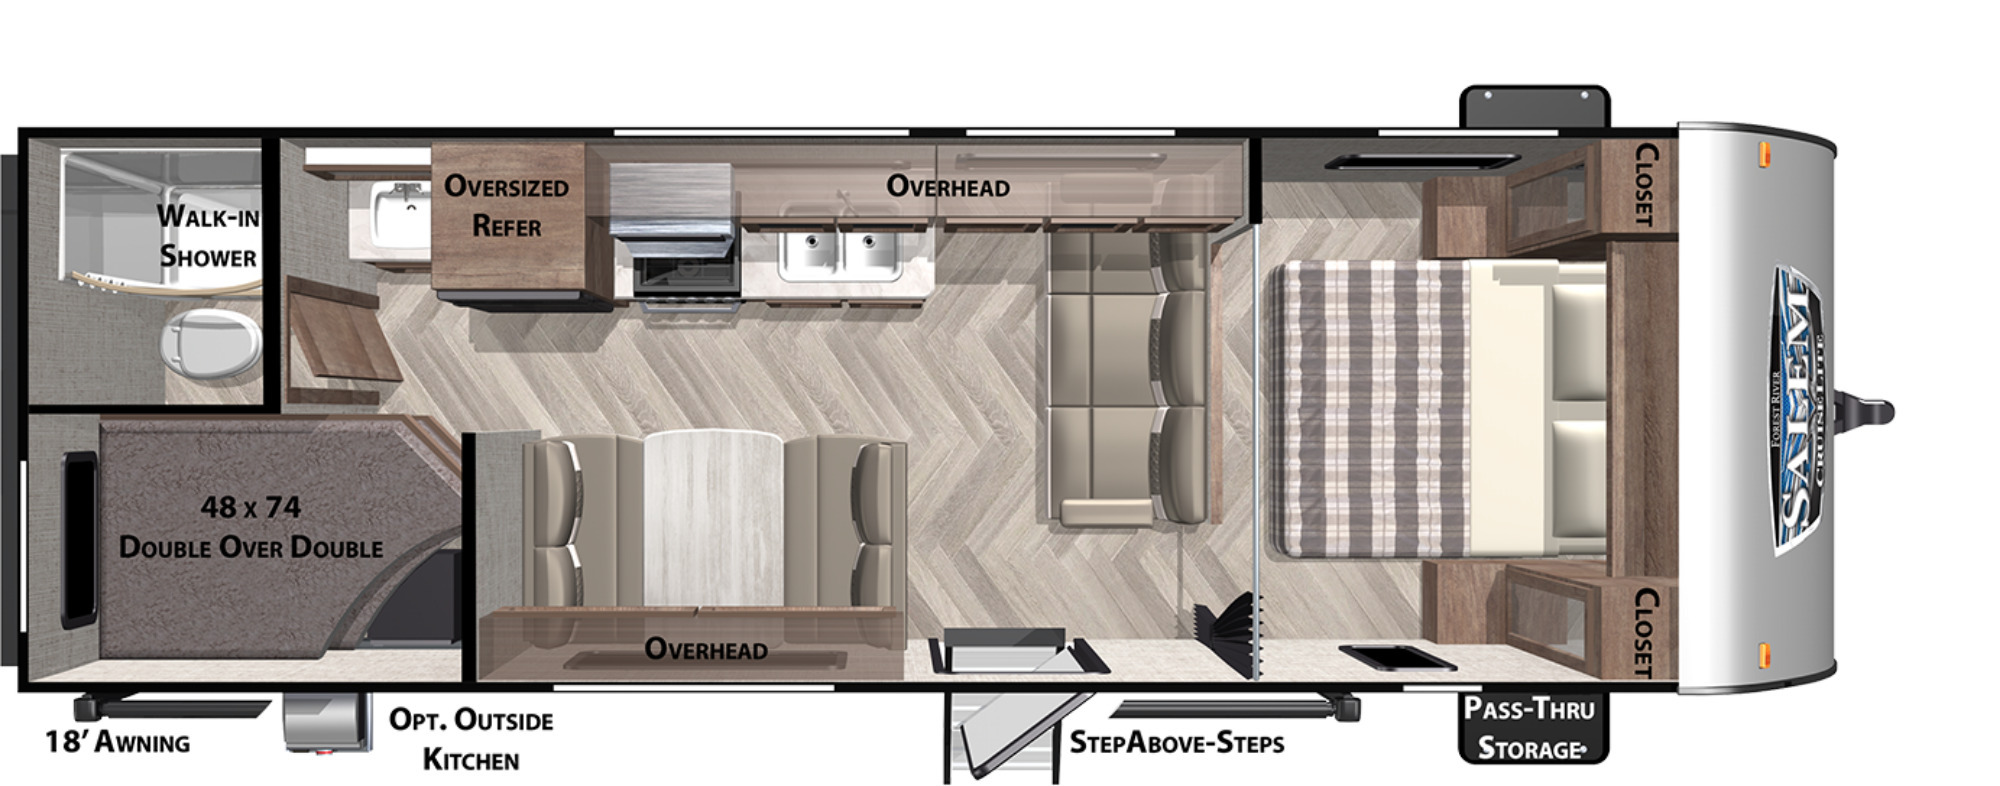 View Floor Plan for 2022 FOREST RIVER SALEM CRUISE LITE 261BHXL